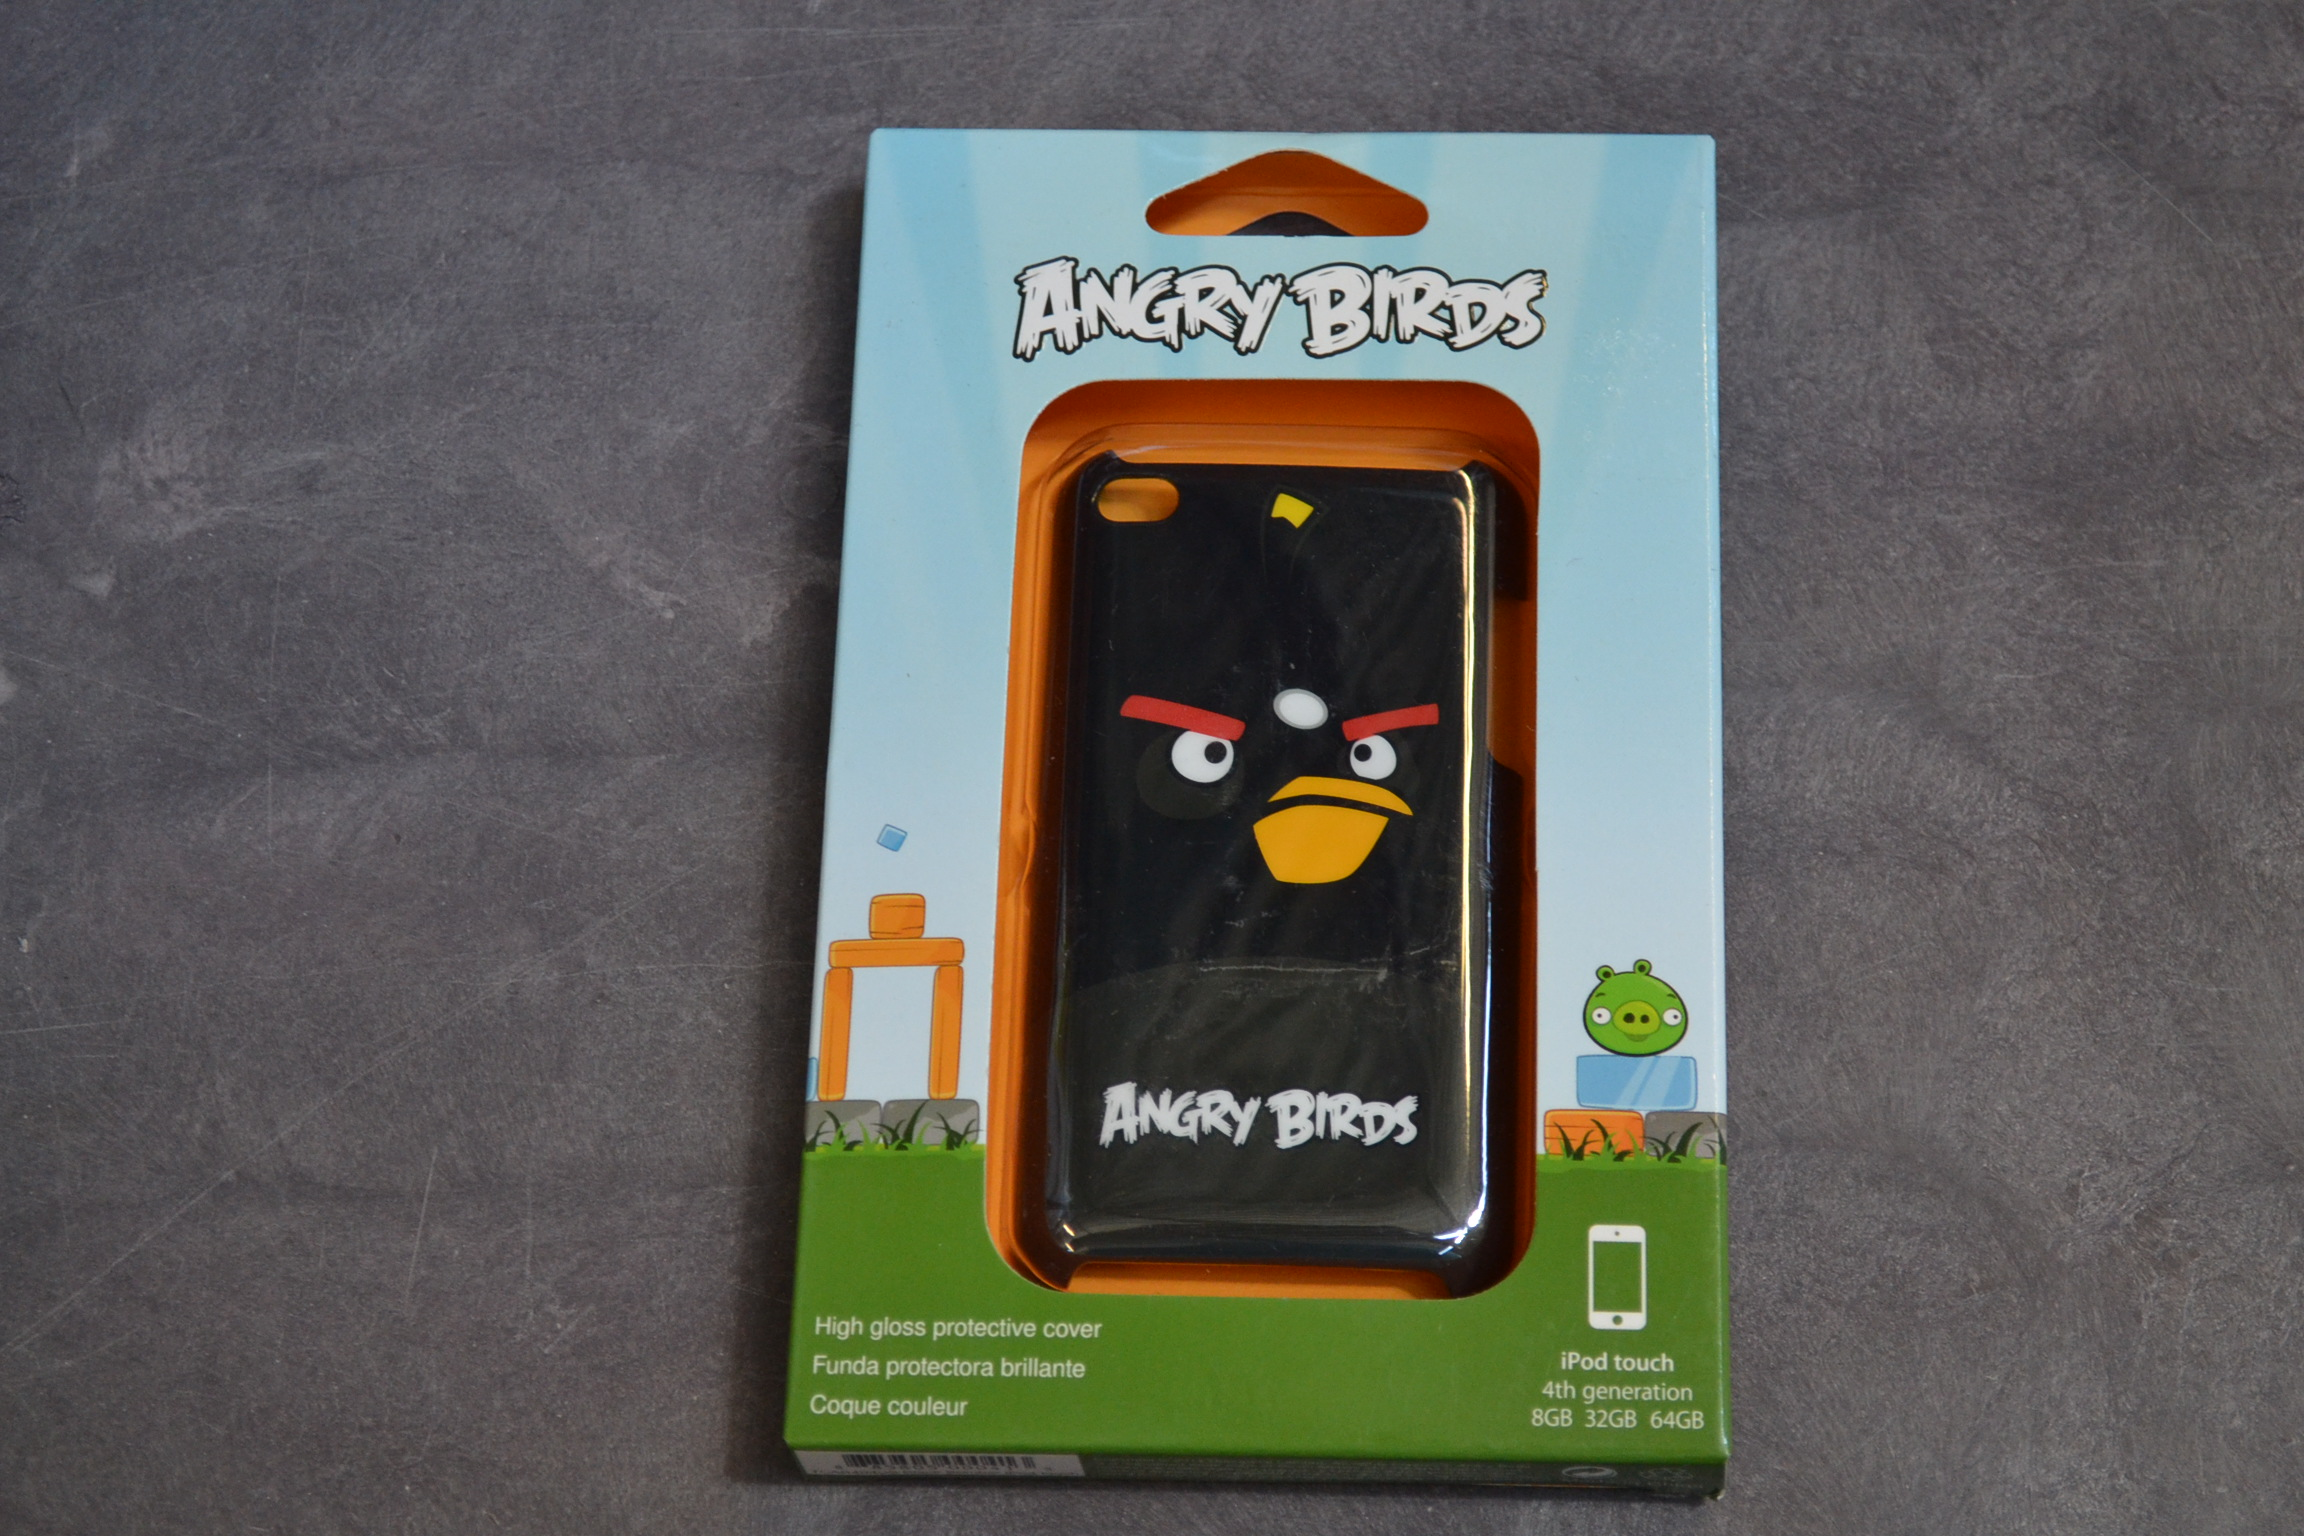 GEAR4 Angry Birds Case For iPod Touch Black Bird Fitted EX-310W EX-310W